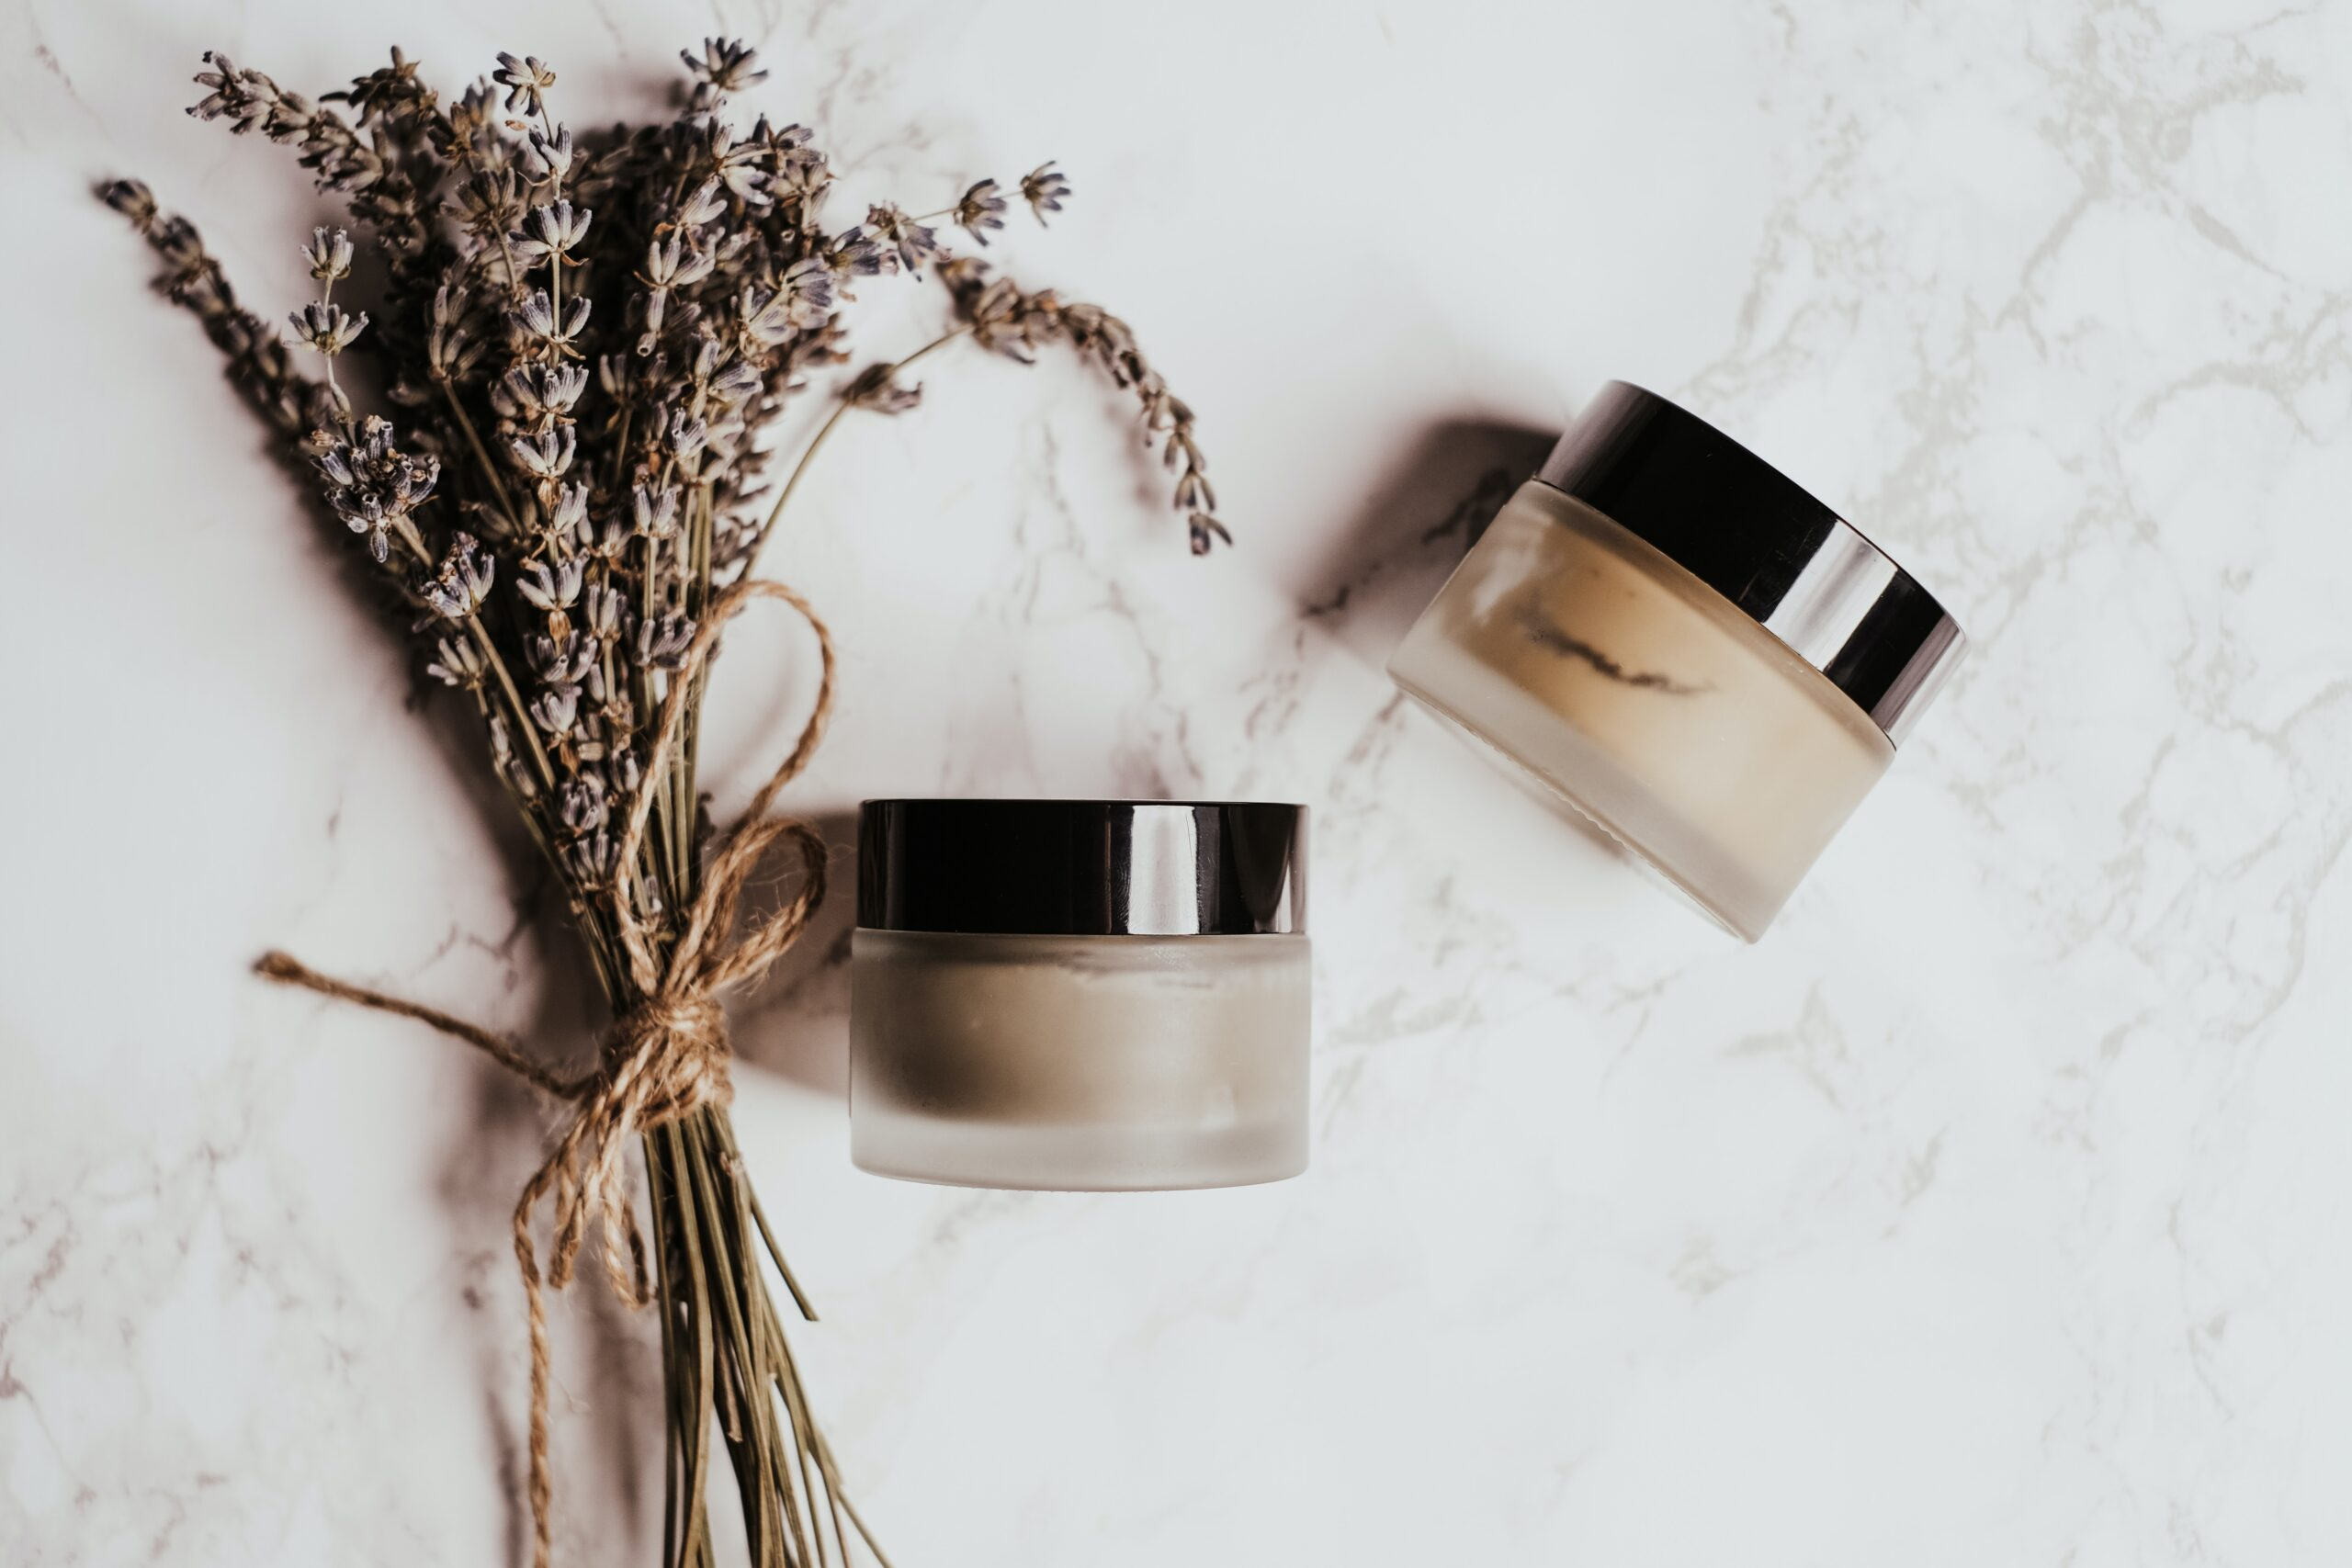 Essential Reasons to Switch to Australian Natural Skincare Products